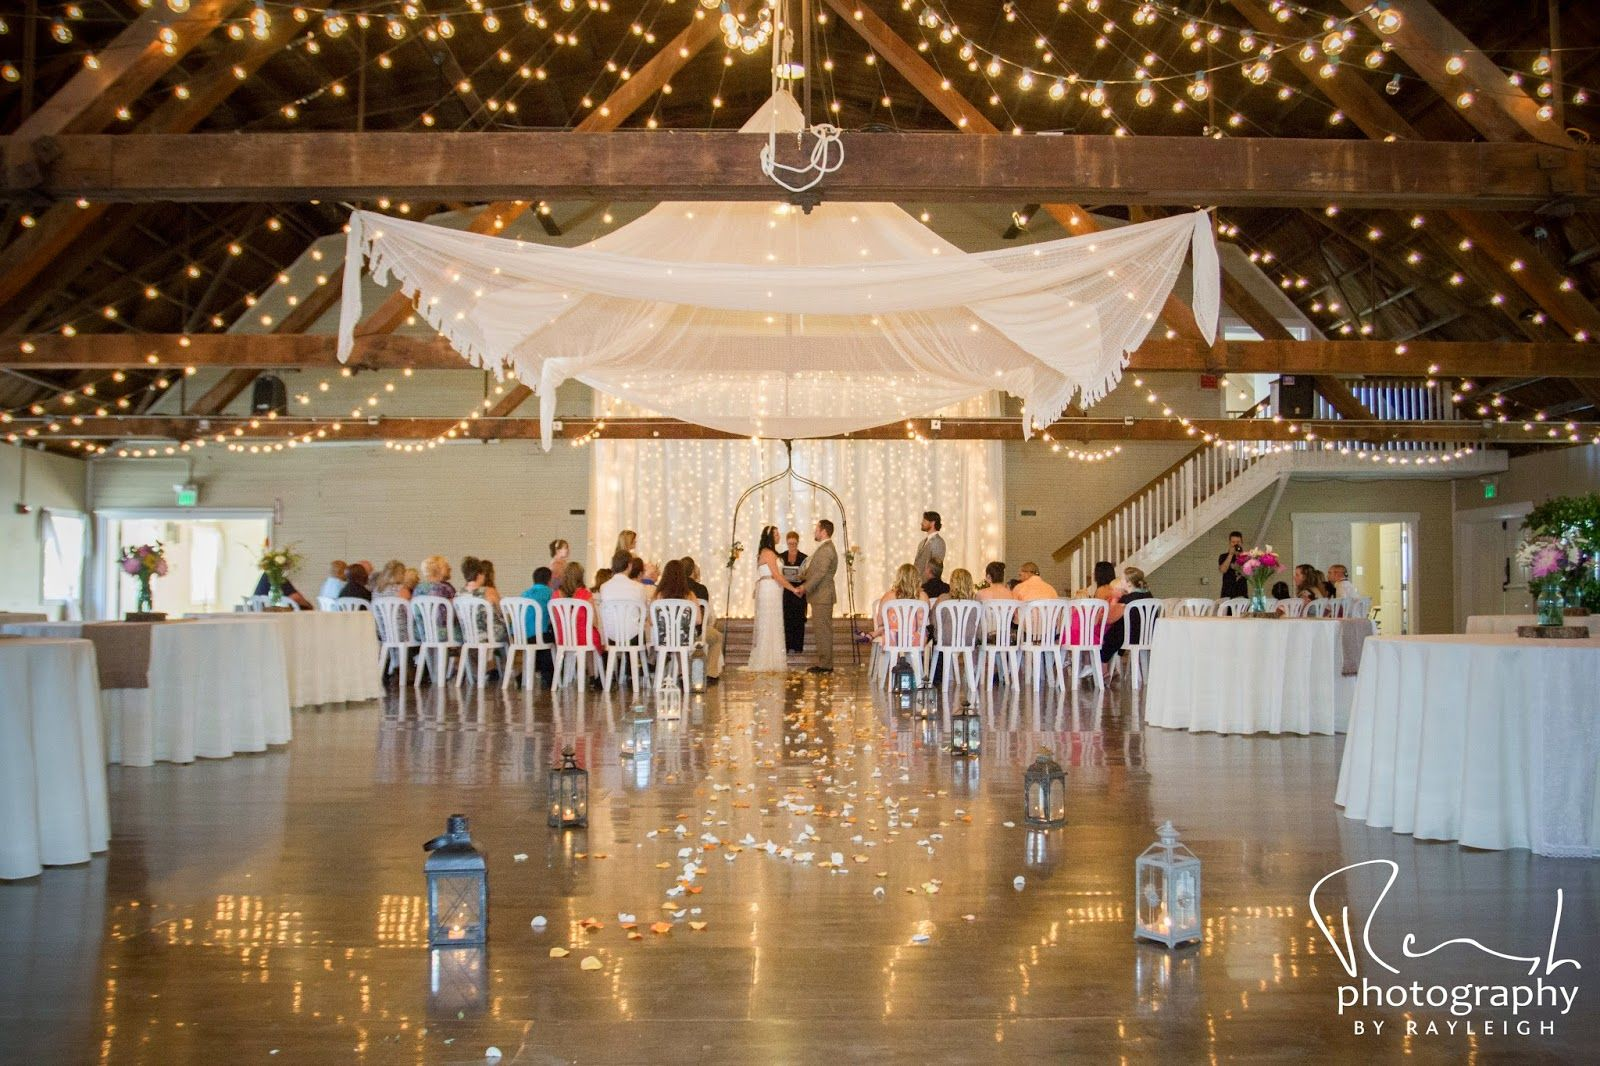 Twinkle lights with lace canopy rustic barn wedding 10 mins from Salem, OR small wedding